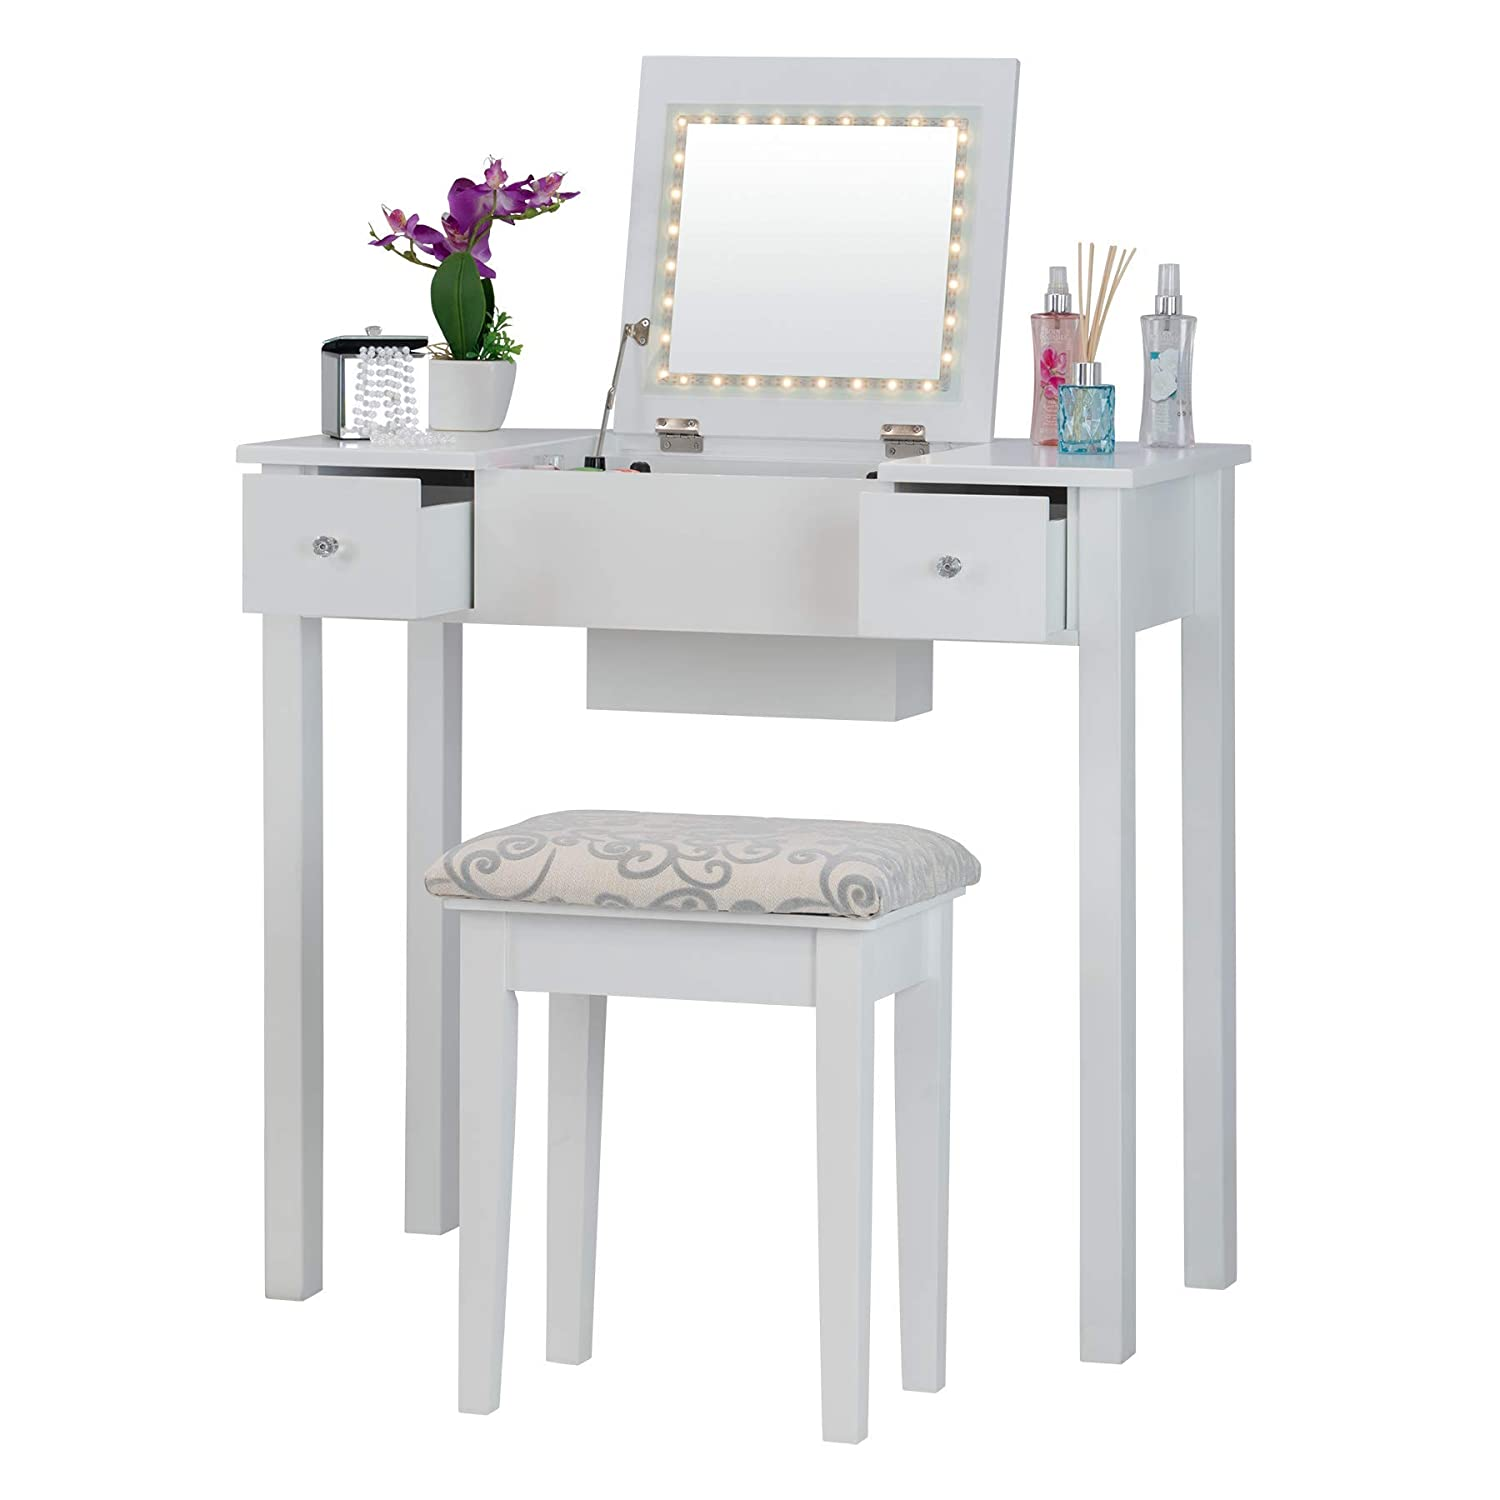 White Fineboard FB-VT23-W Dressing Mirror LED Lights and Stool Makeup Vanity Table, White